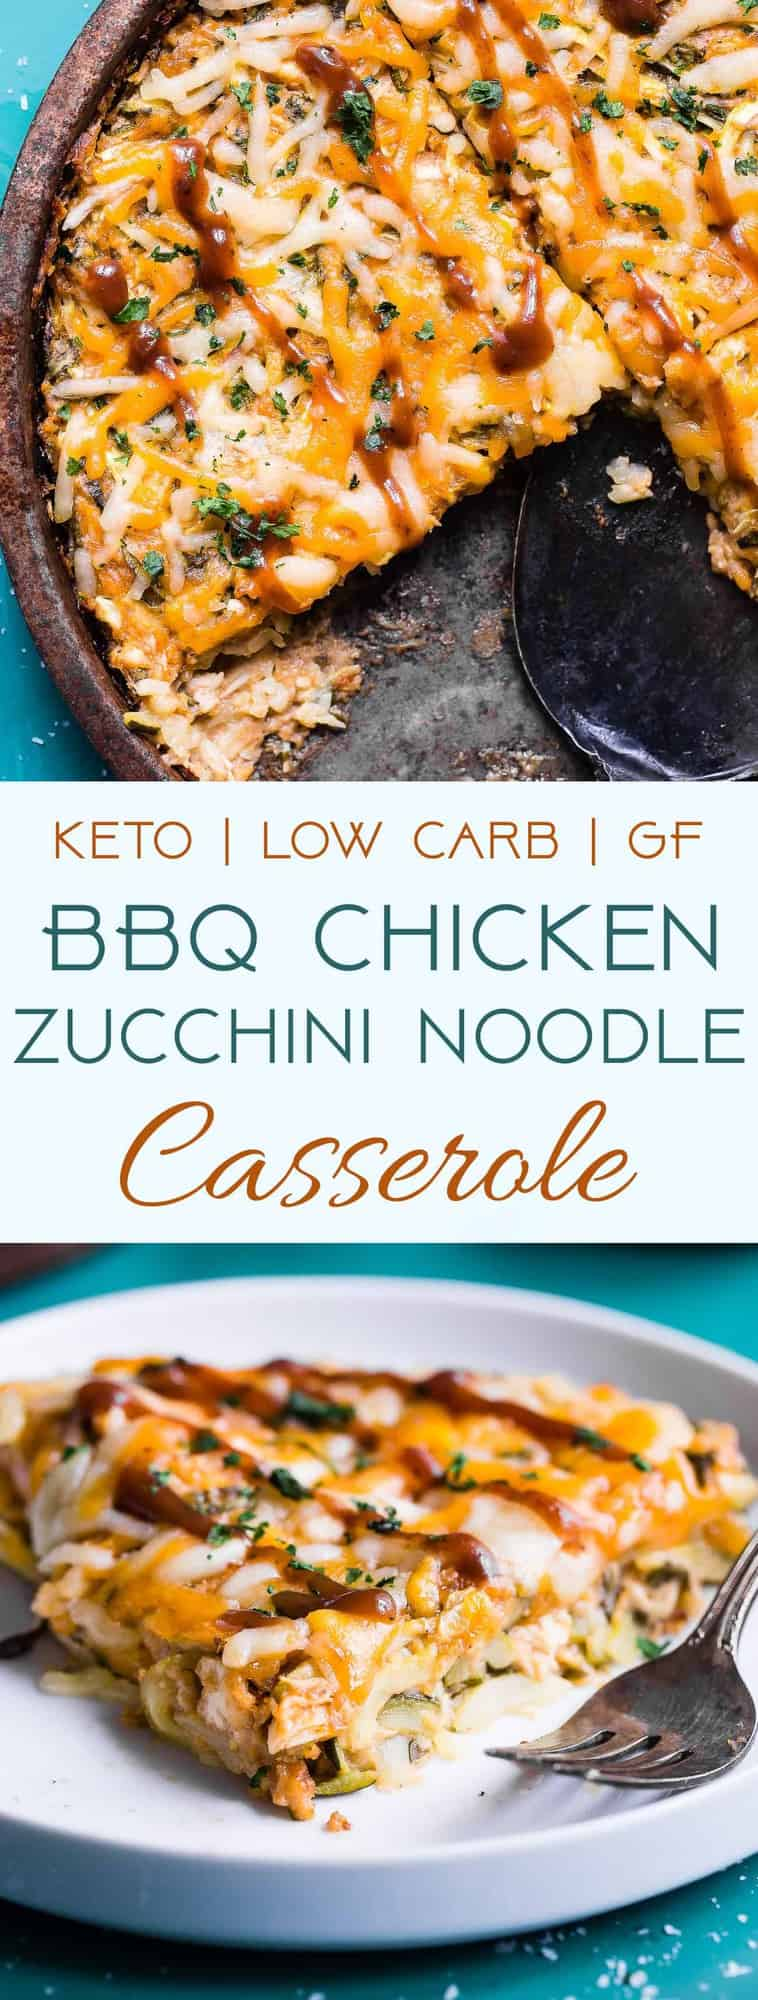 Keto BBQ Chicken Zucchini Noodle Casserole -This 6 ingredient casserole is an ULTRA delicious weeknight dinner that is under 300 calories, protein packed and will please even picky eaters! Gluten free & low carb too! | #Foodfaithfitness | #Keto #Lowcarb #Glutenfree #Sugarfree #Healthy